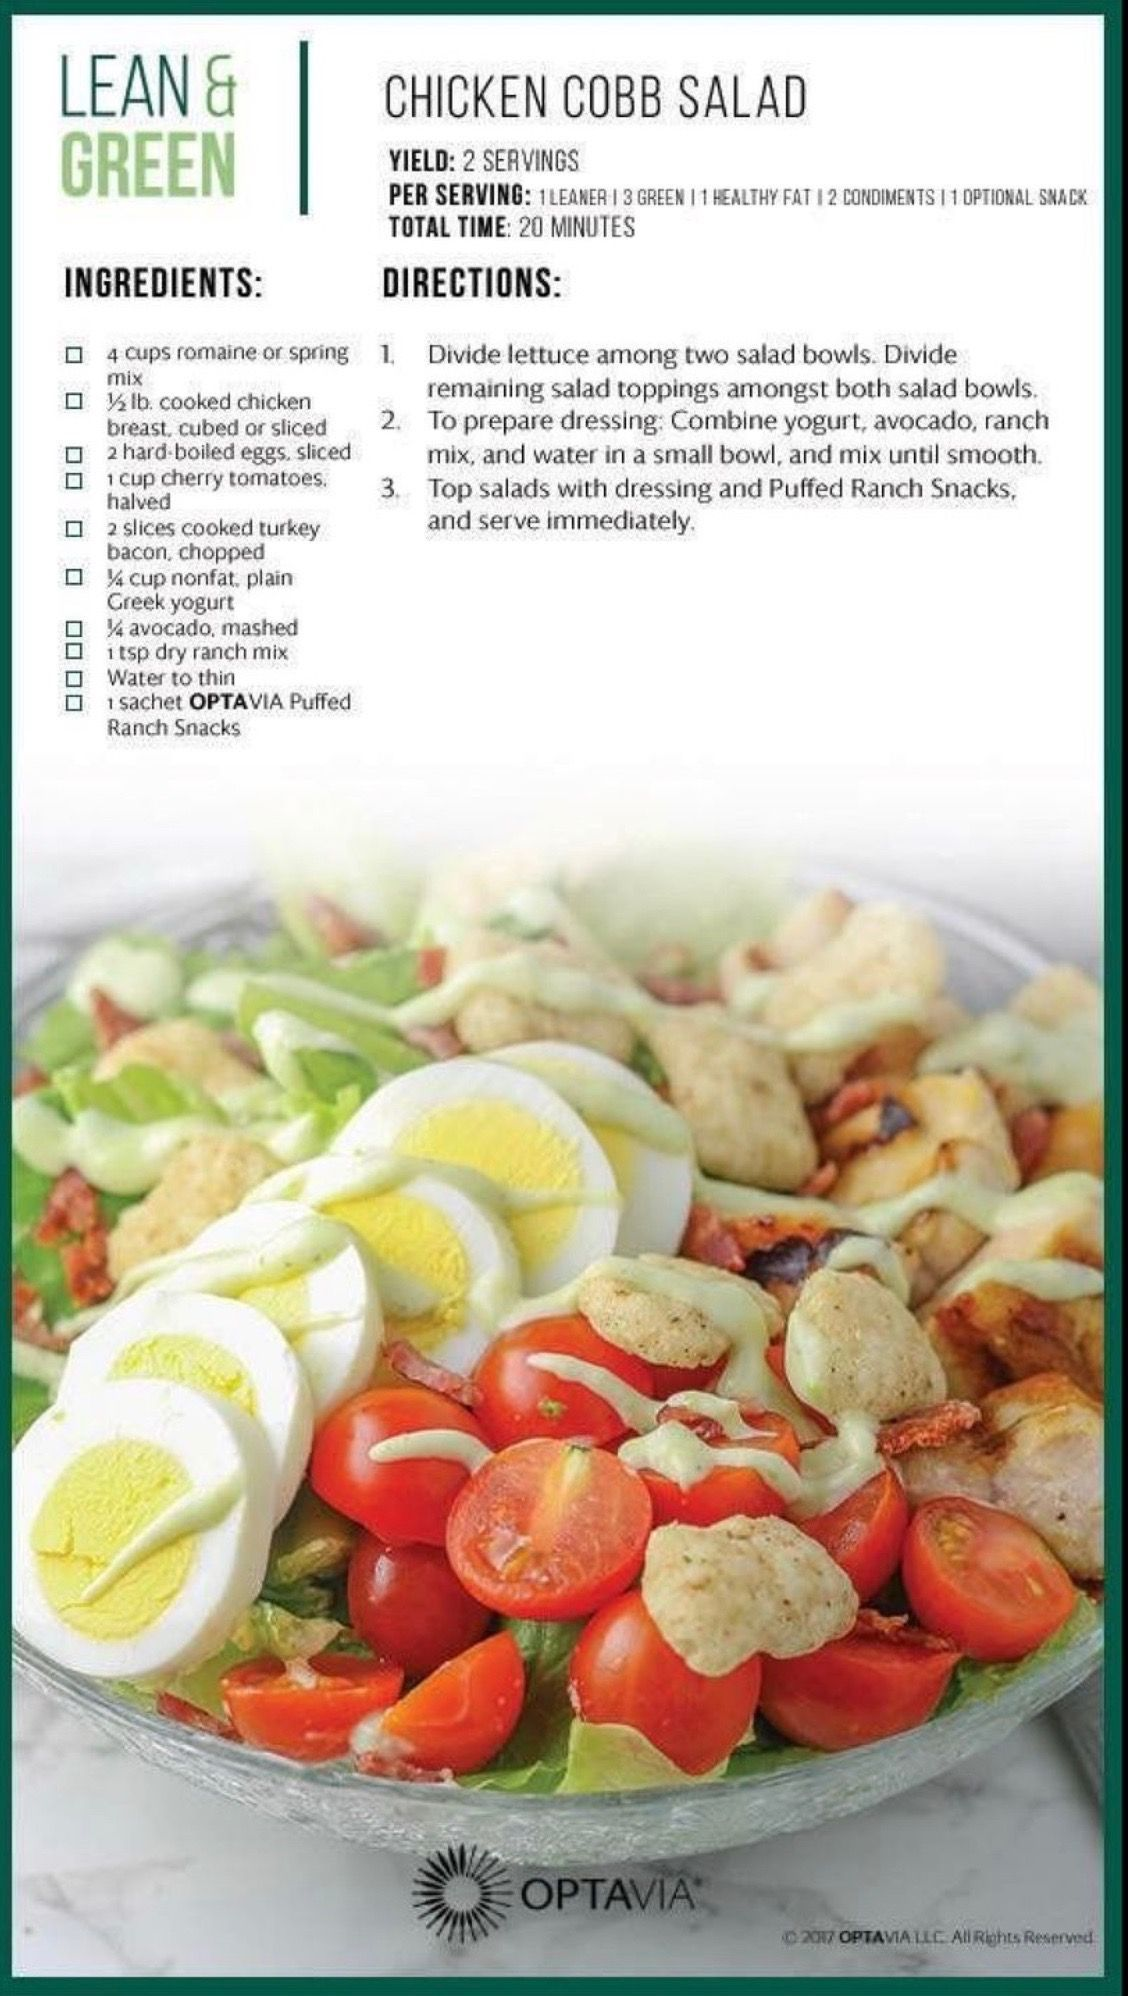 Chicken Cobb Salad Lets S Eat Optavia And Lean Amp Green In 2019 Lean Green Meals Lean